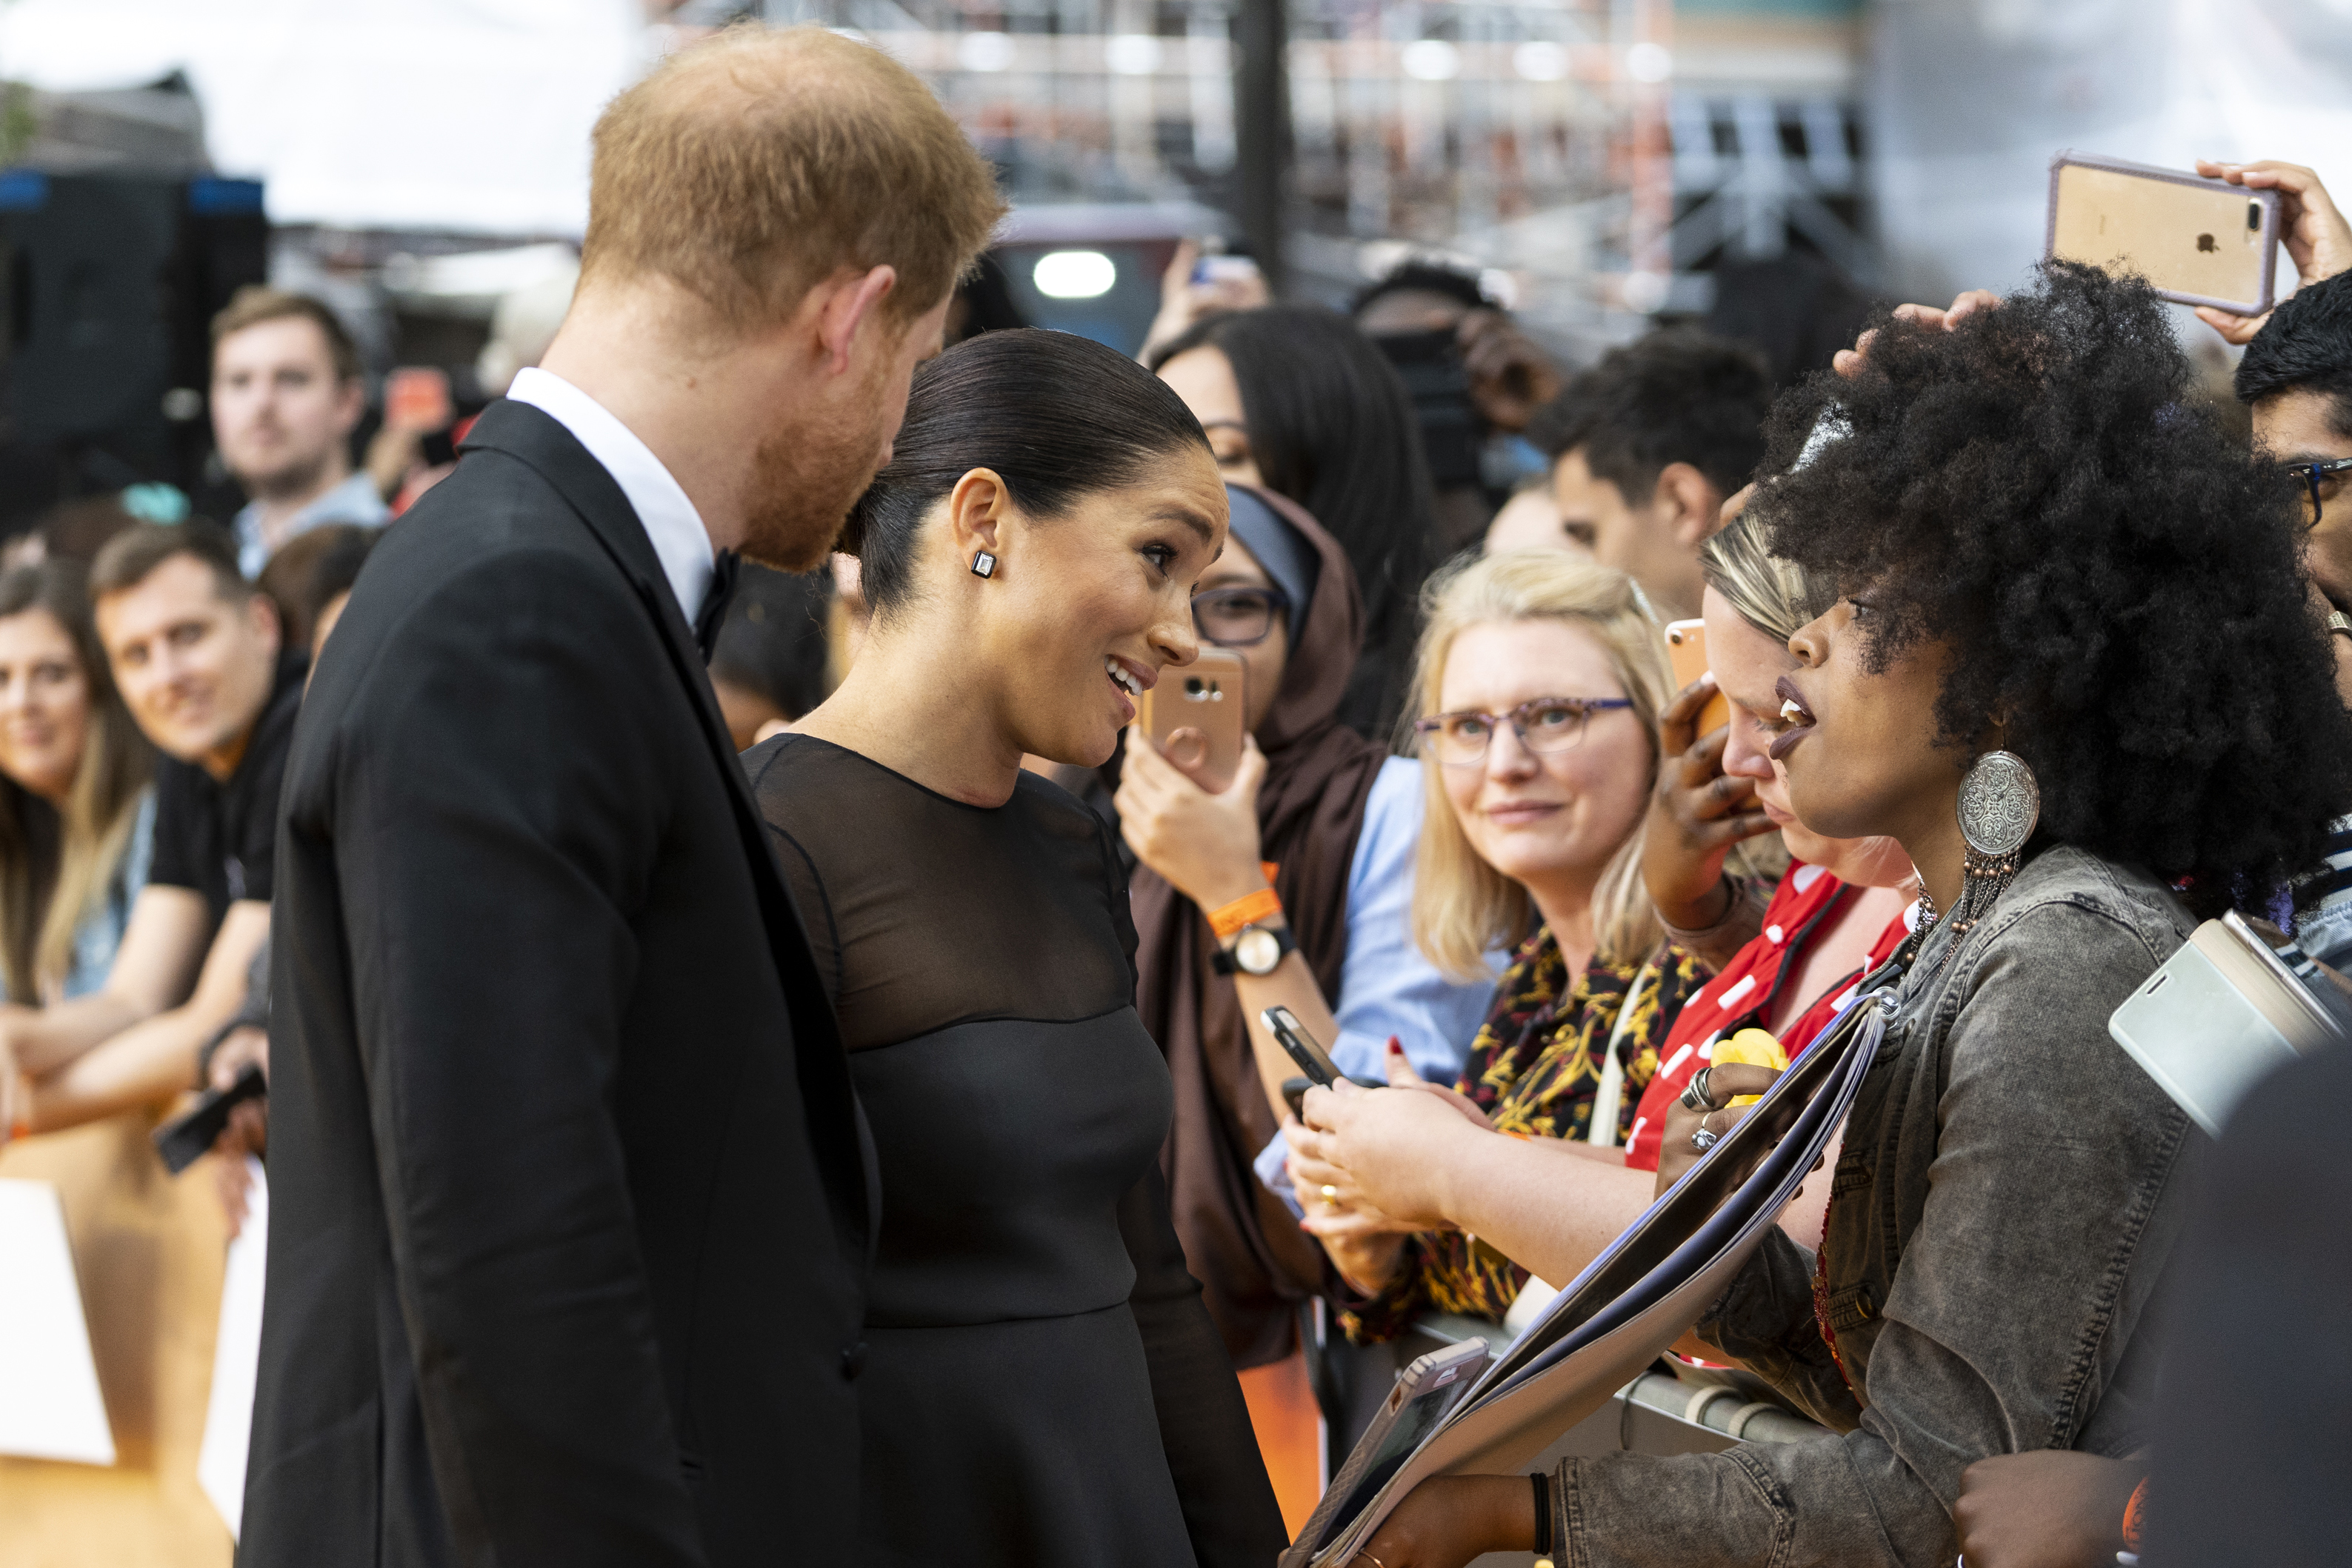 """LONDON, ENGLAND - JULY 14: Prince Harry, Duke of Sussex and Meghan, Duchess of Sussex arrive to attend the European Premiere of Disney's """"The Lion King"""" at Odeon Luxe Leicester Square on July 14, 2019 in London, England.  (Photo by Niklas Halle'n-WPA Pool/Getty Images)"""